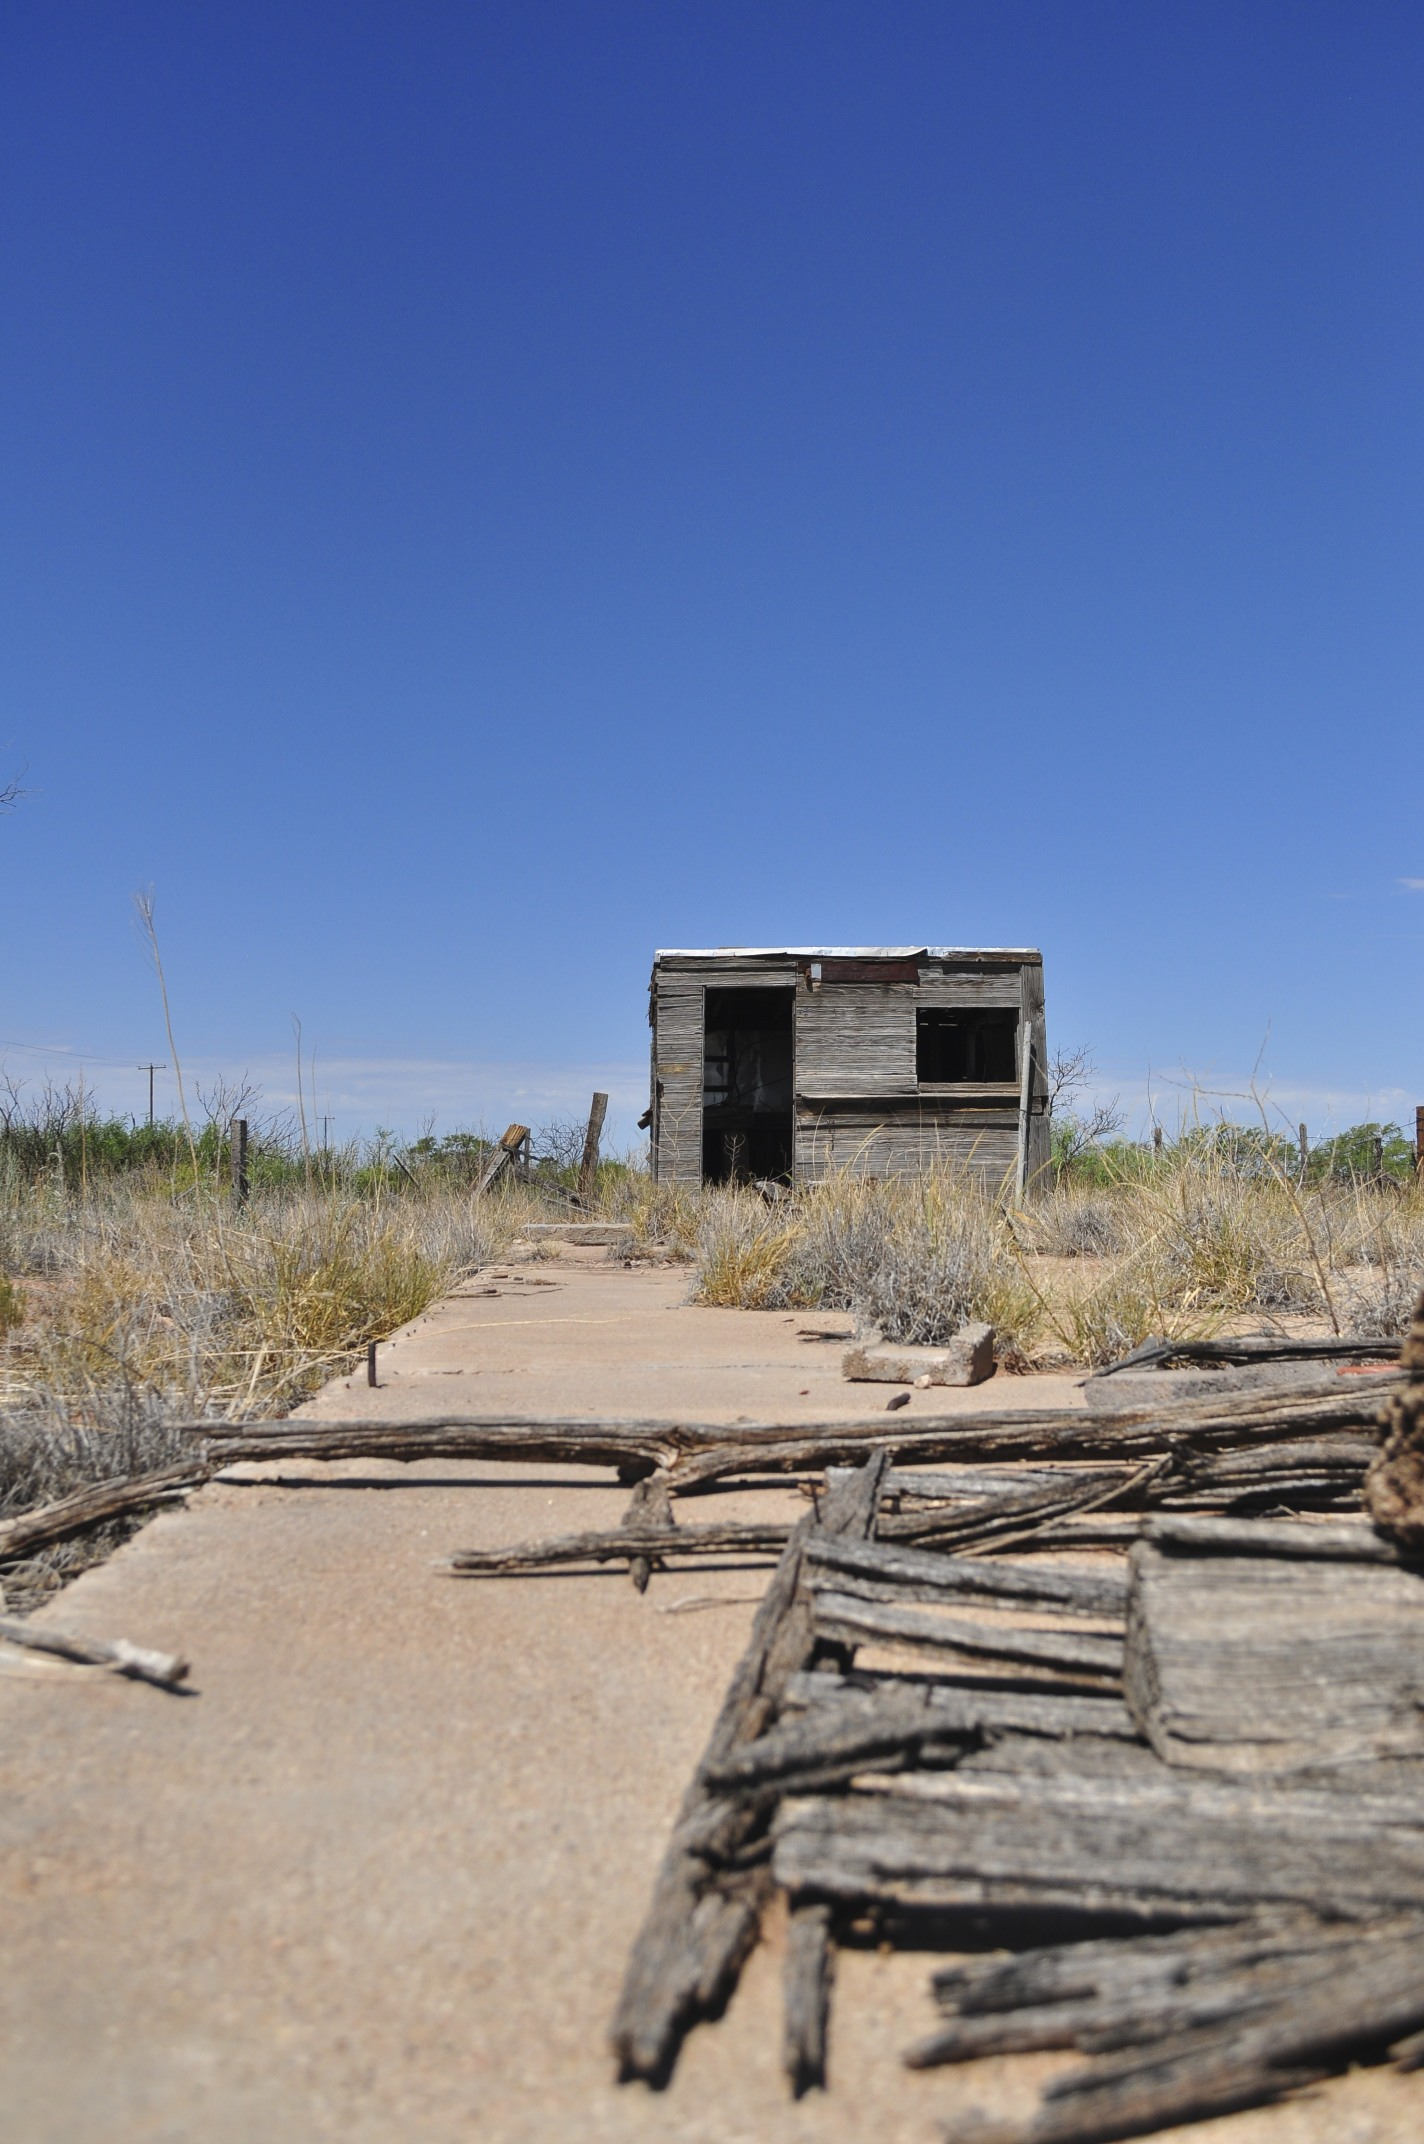 image of an abandoned shack